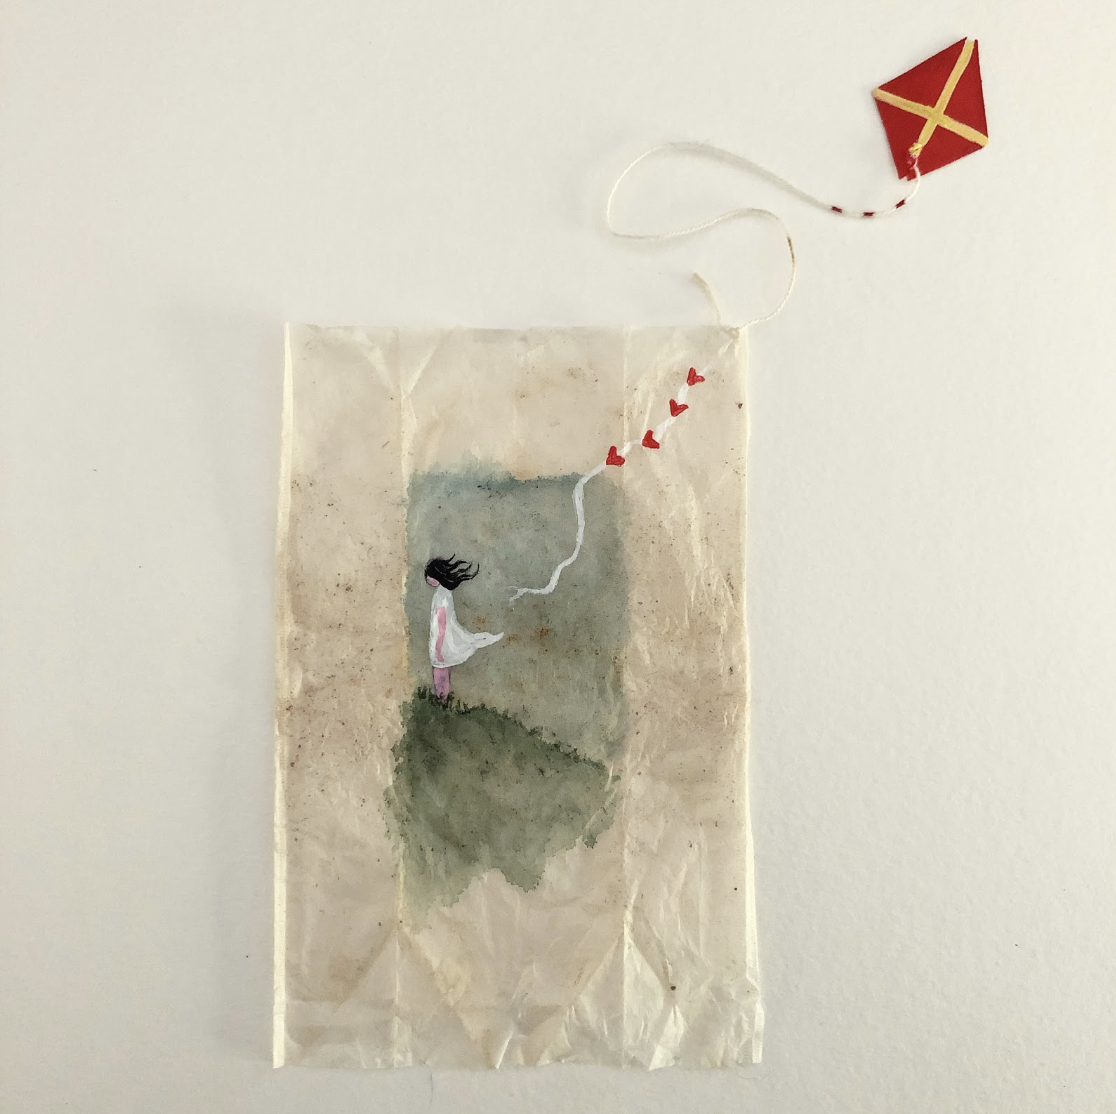 AJ's Teabag Paintings - The beginning of the journey.